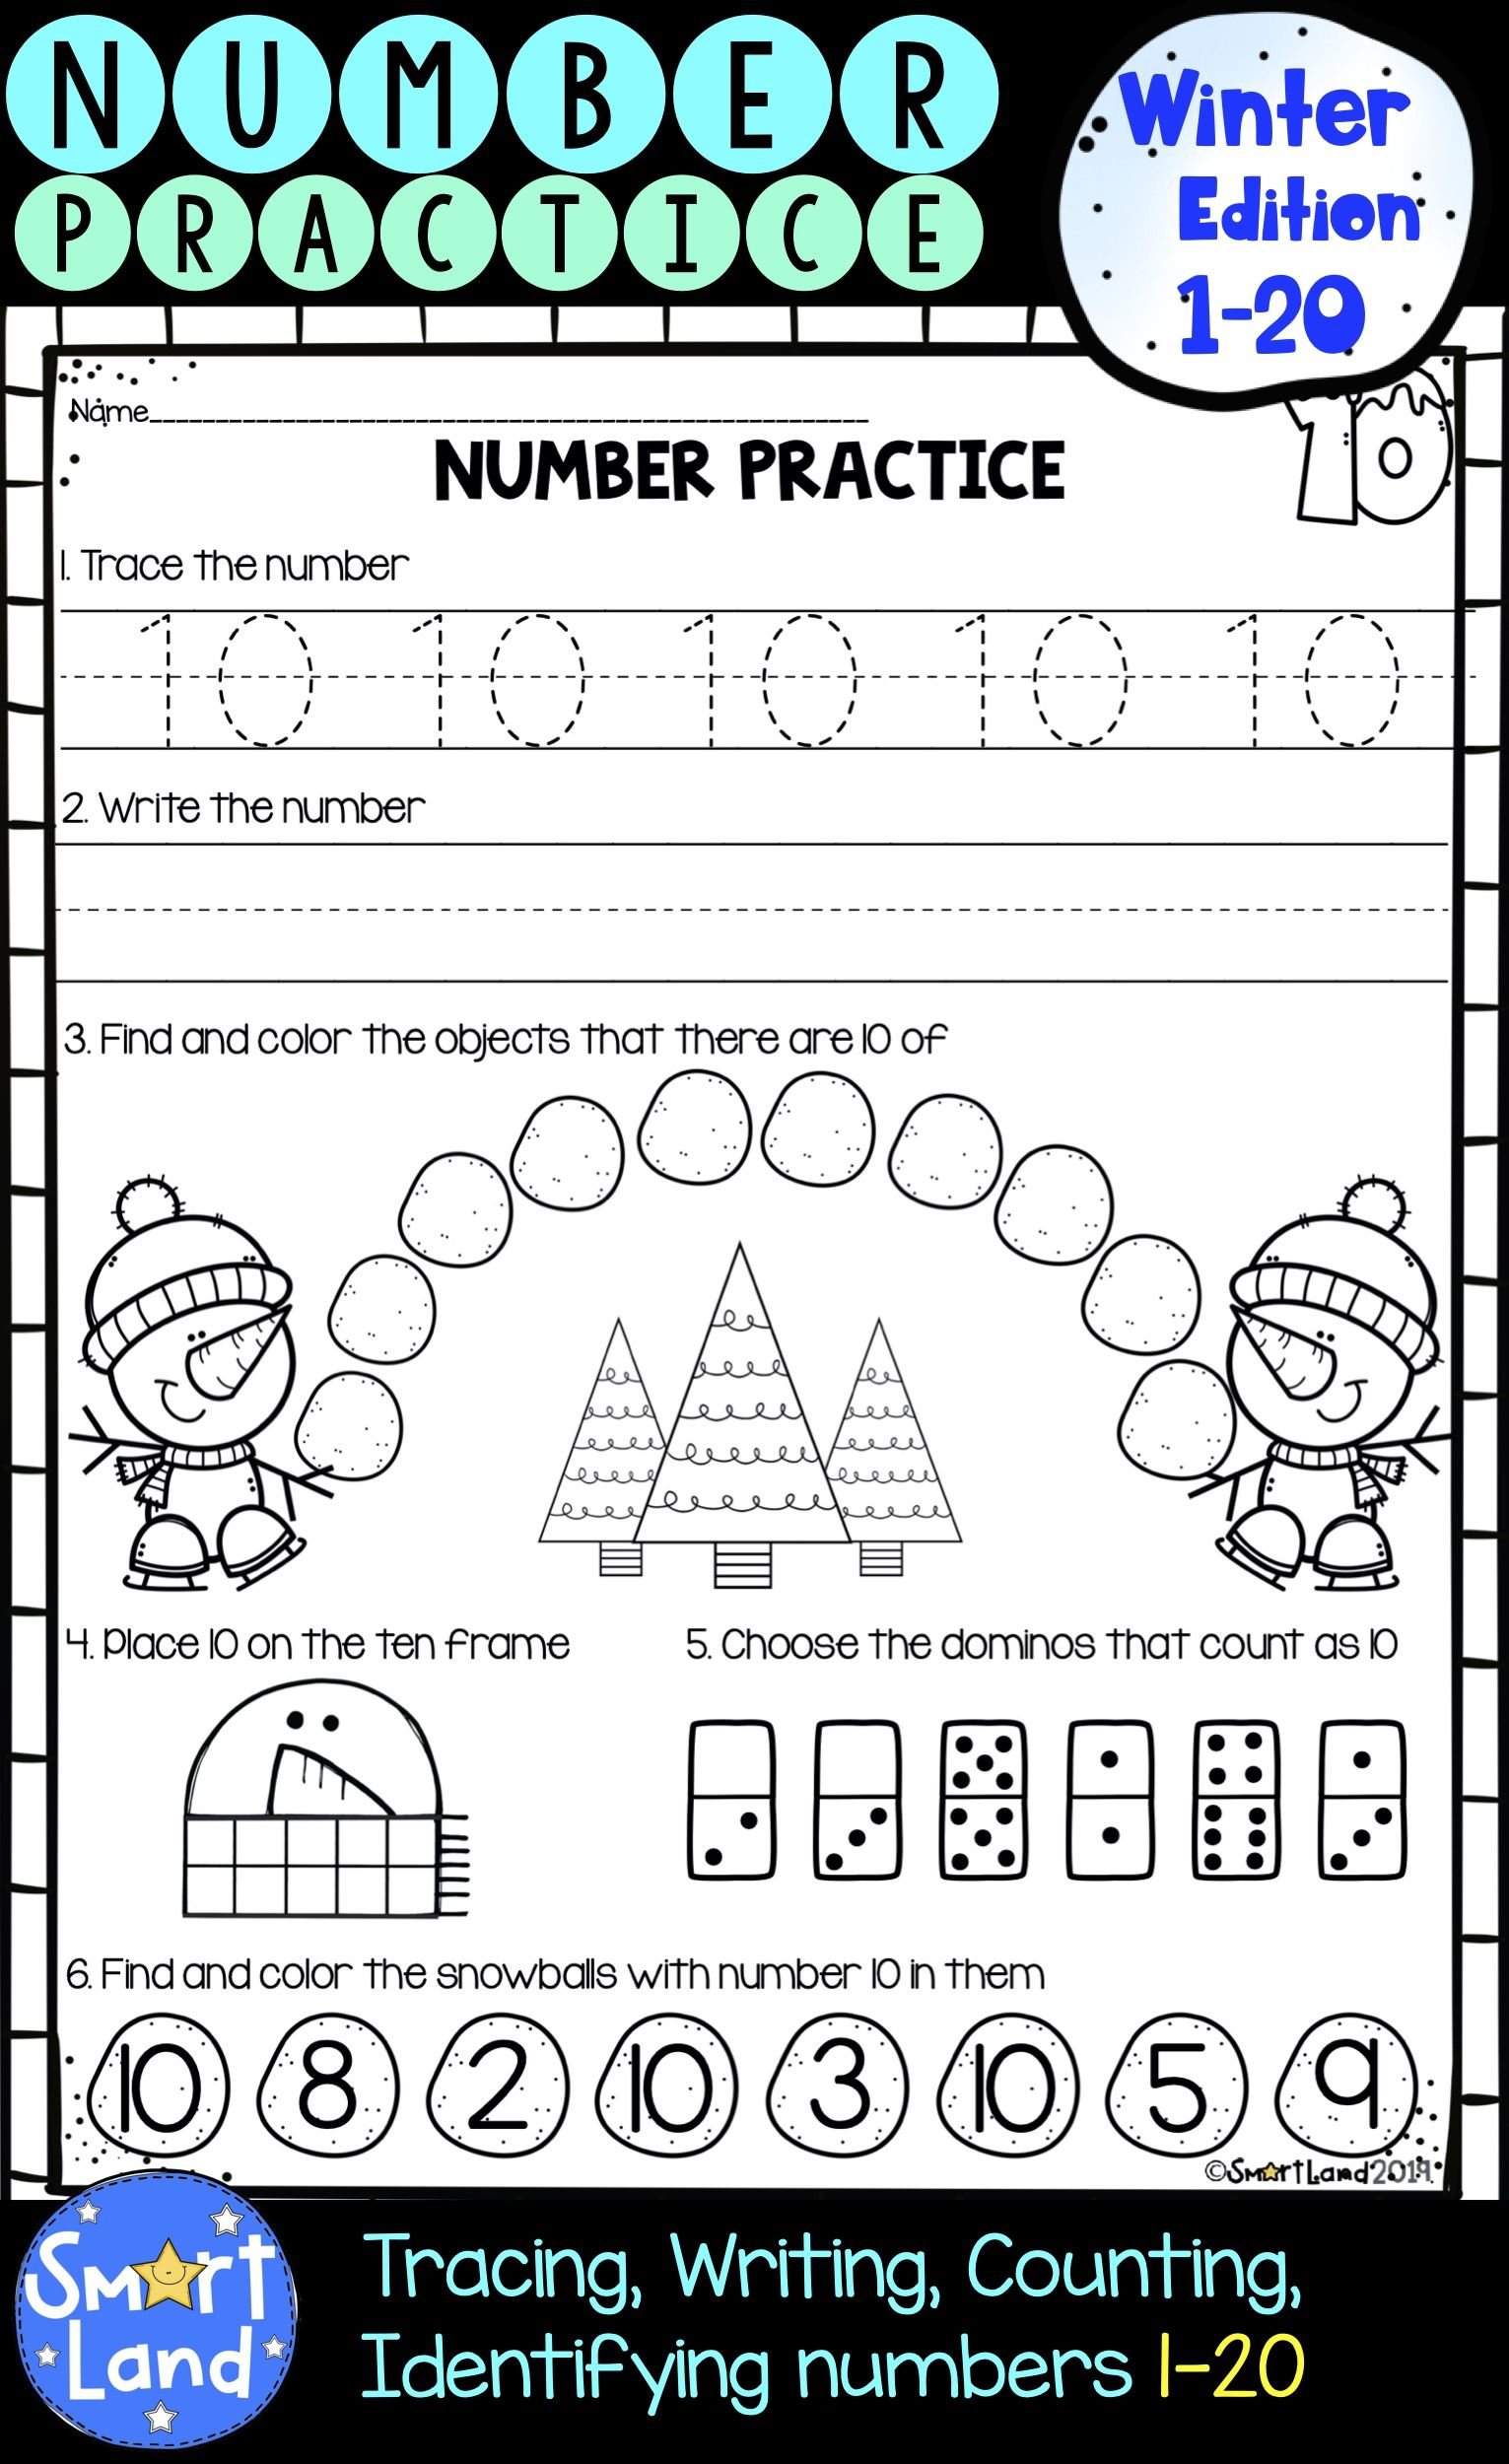 Numbers 1 20 Handwriting And Counting Practice Worksheets